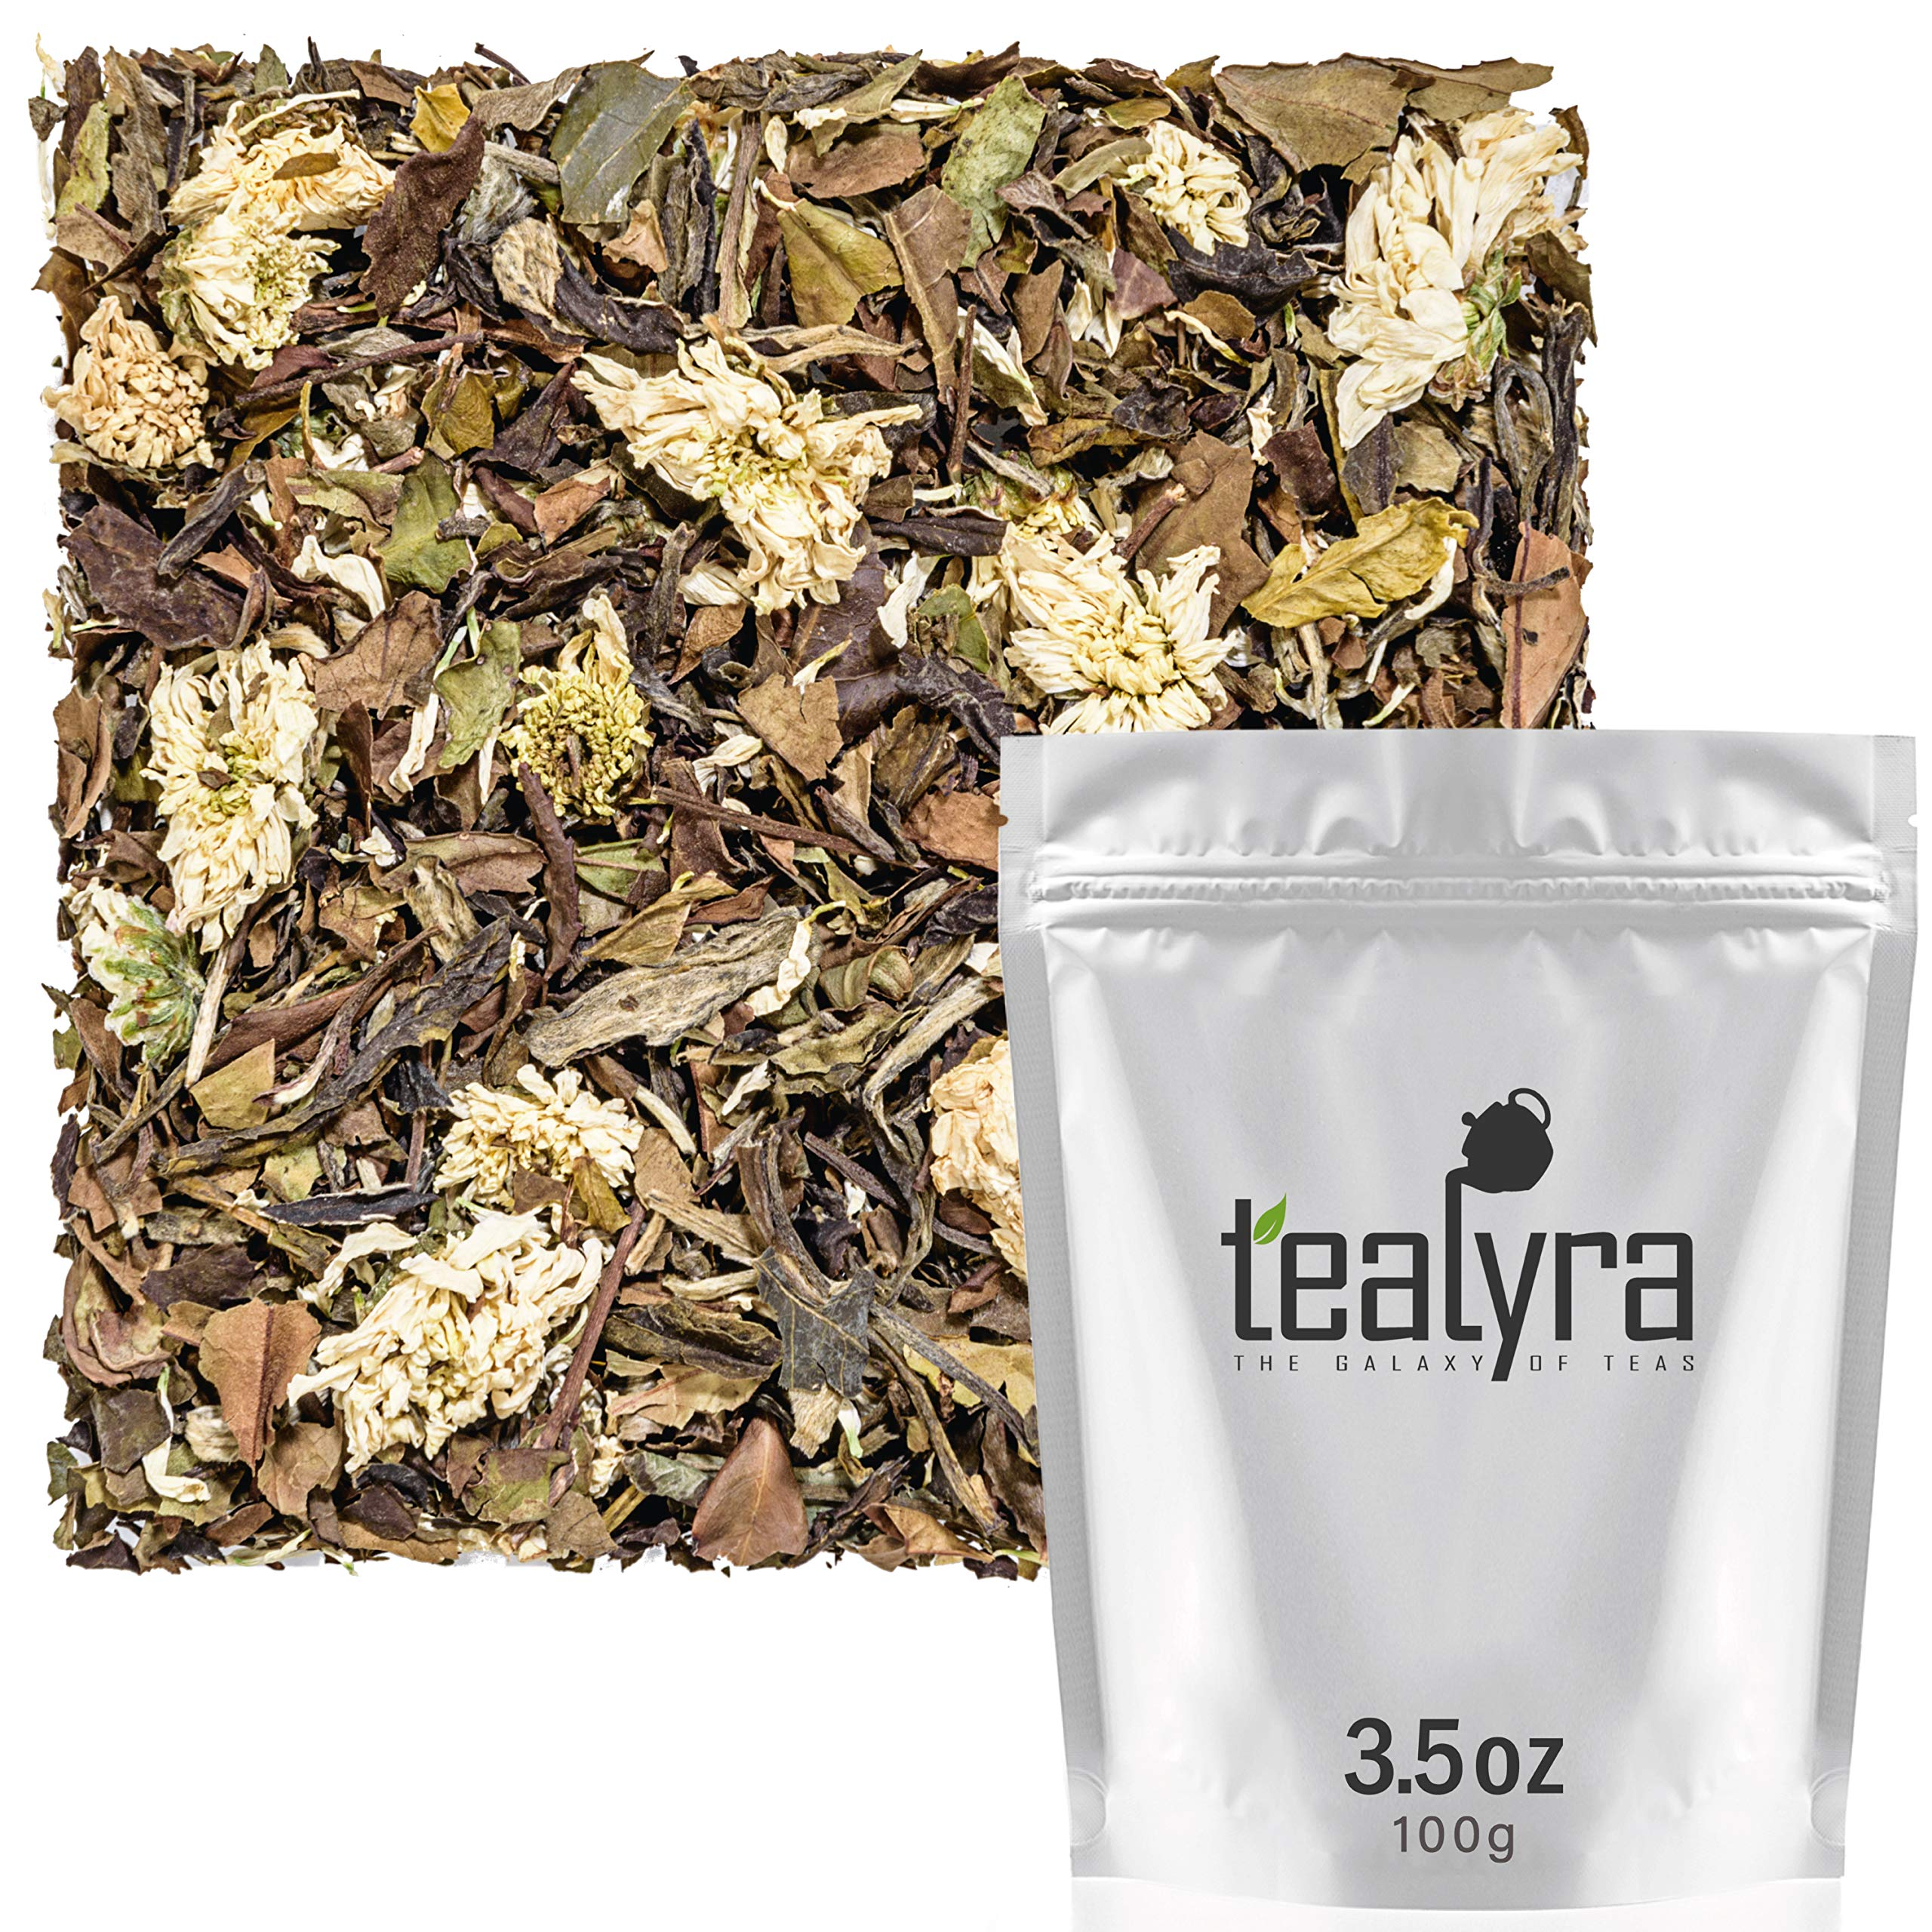 Tealyra - White Chrysanthemum Infusion - White Peony Tea and Chrysanthemum Blossoms - Loose Leaf Tea Blend - High in Antioxidants - All Natural - Healthy - Caffeine Low - 100g (3.5-ounce) by Tealyra